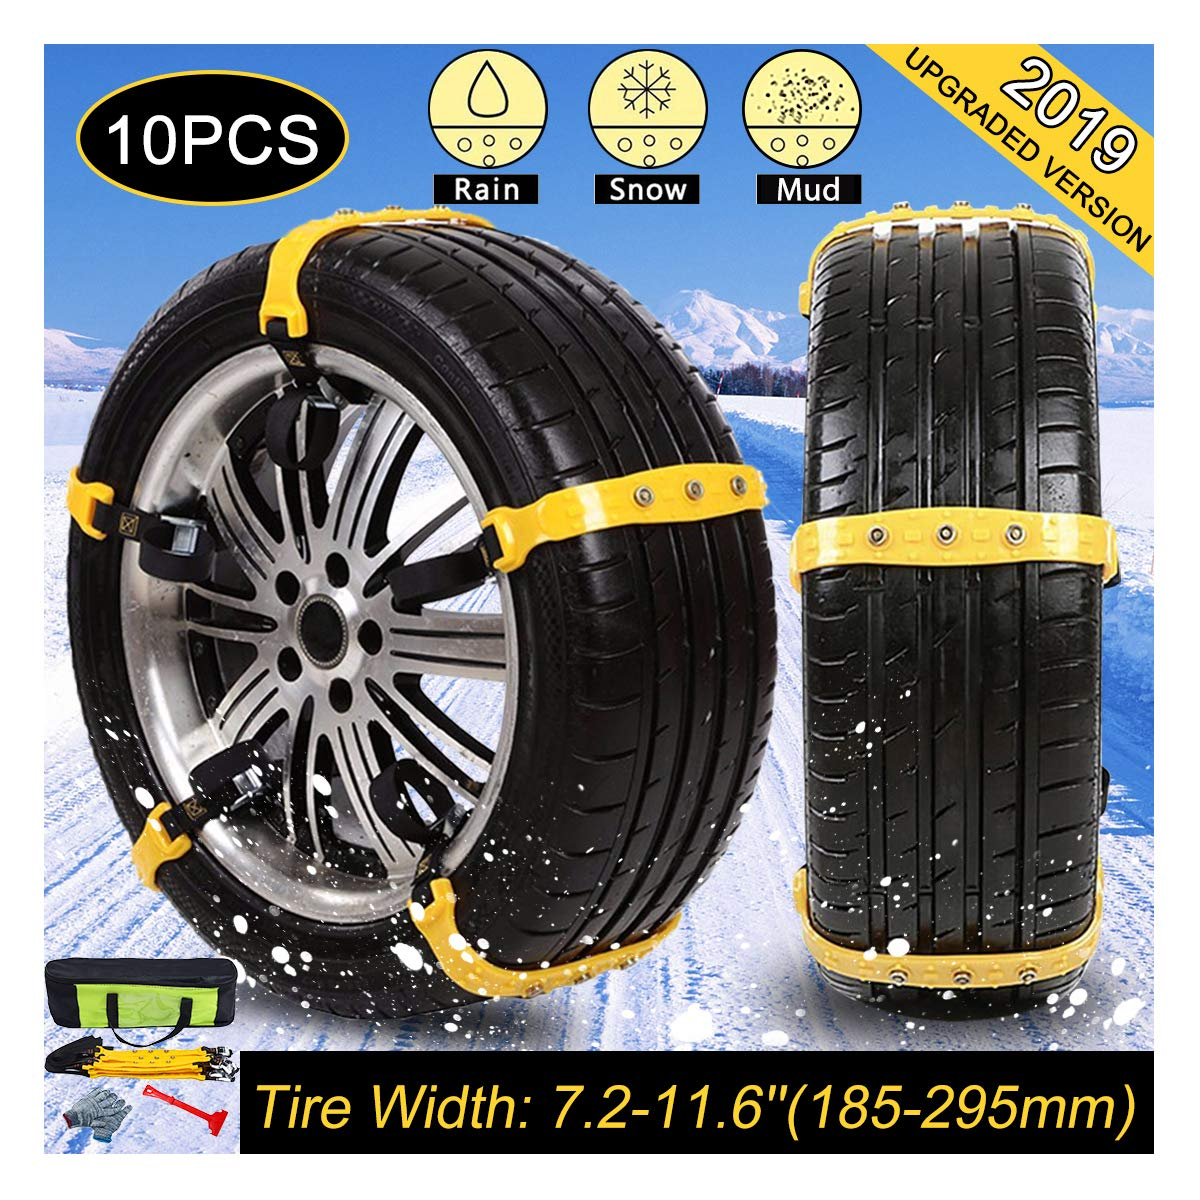 Snow Chains for SUV, Winter Tire Chains for Trucks Emergency Tire Chain Snow Chain with Adjustable Tension Straps of SUV, Car Set of 10 Winter Driving Security Chains Tire Width:185-295mm/7.2-11.6in Mojonnie